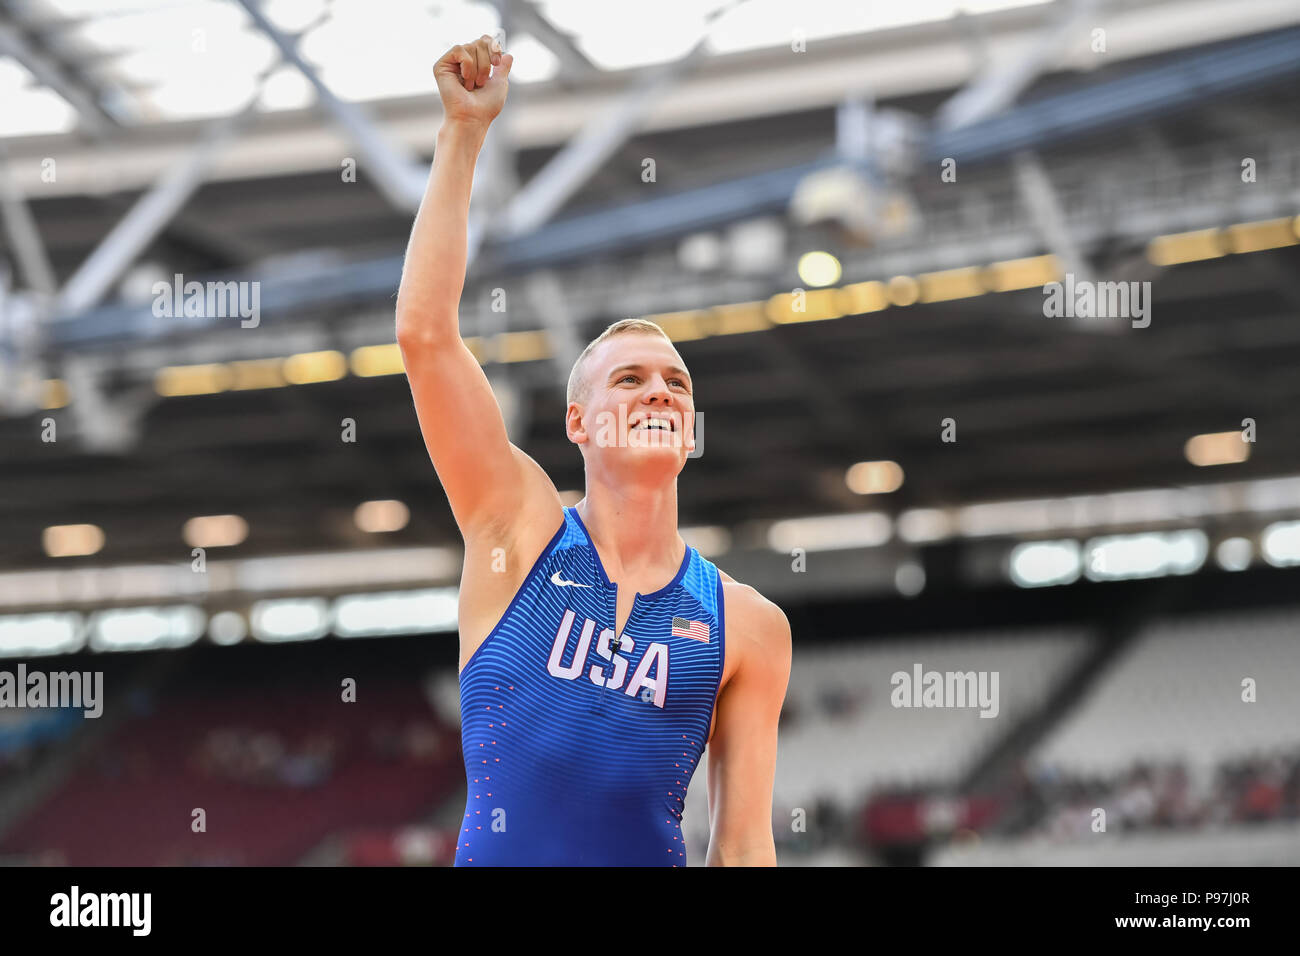 Sam Kendricks celebrates wining the Men's Polo Vault during Athletics World Cup London 2018 at London Stadium on Sunday, 15 July 2018. LONDON, ENGLAND. Credit: Taka G Wu - Stock Image